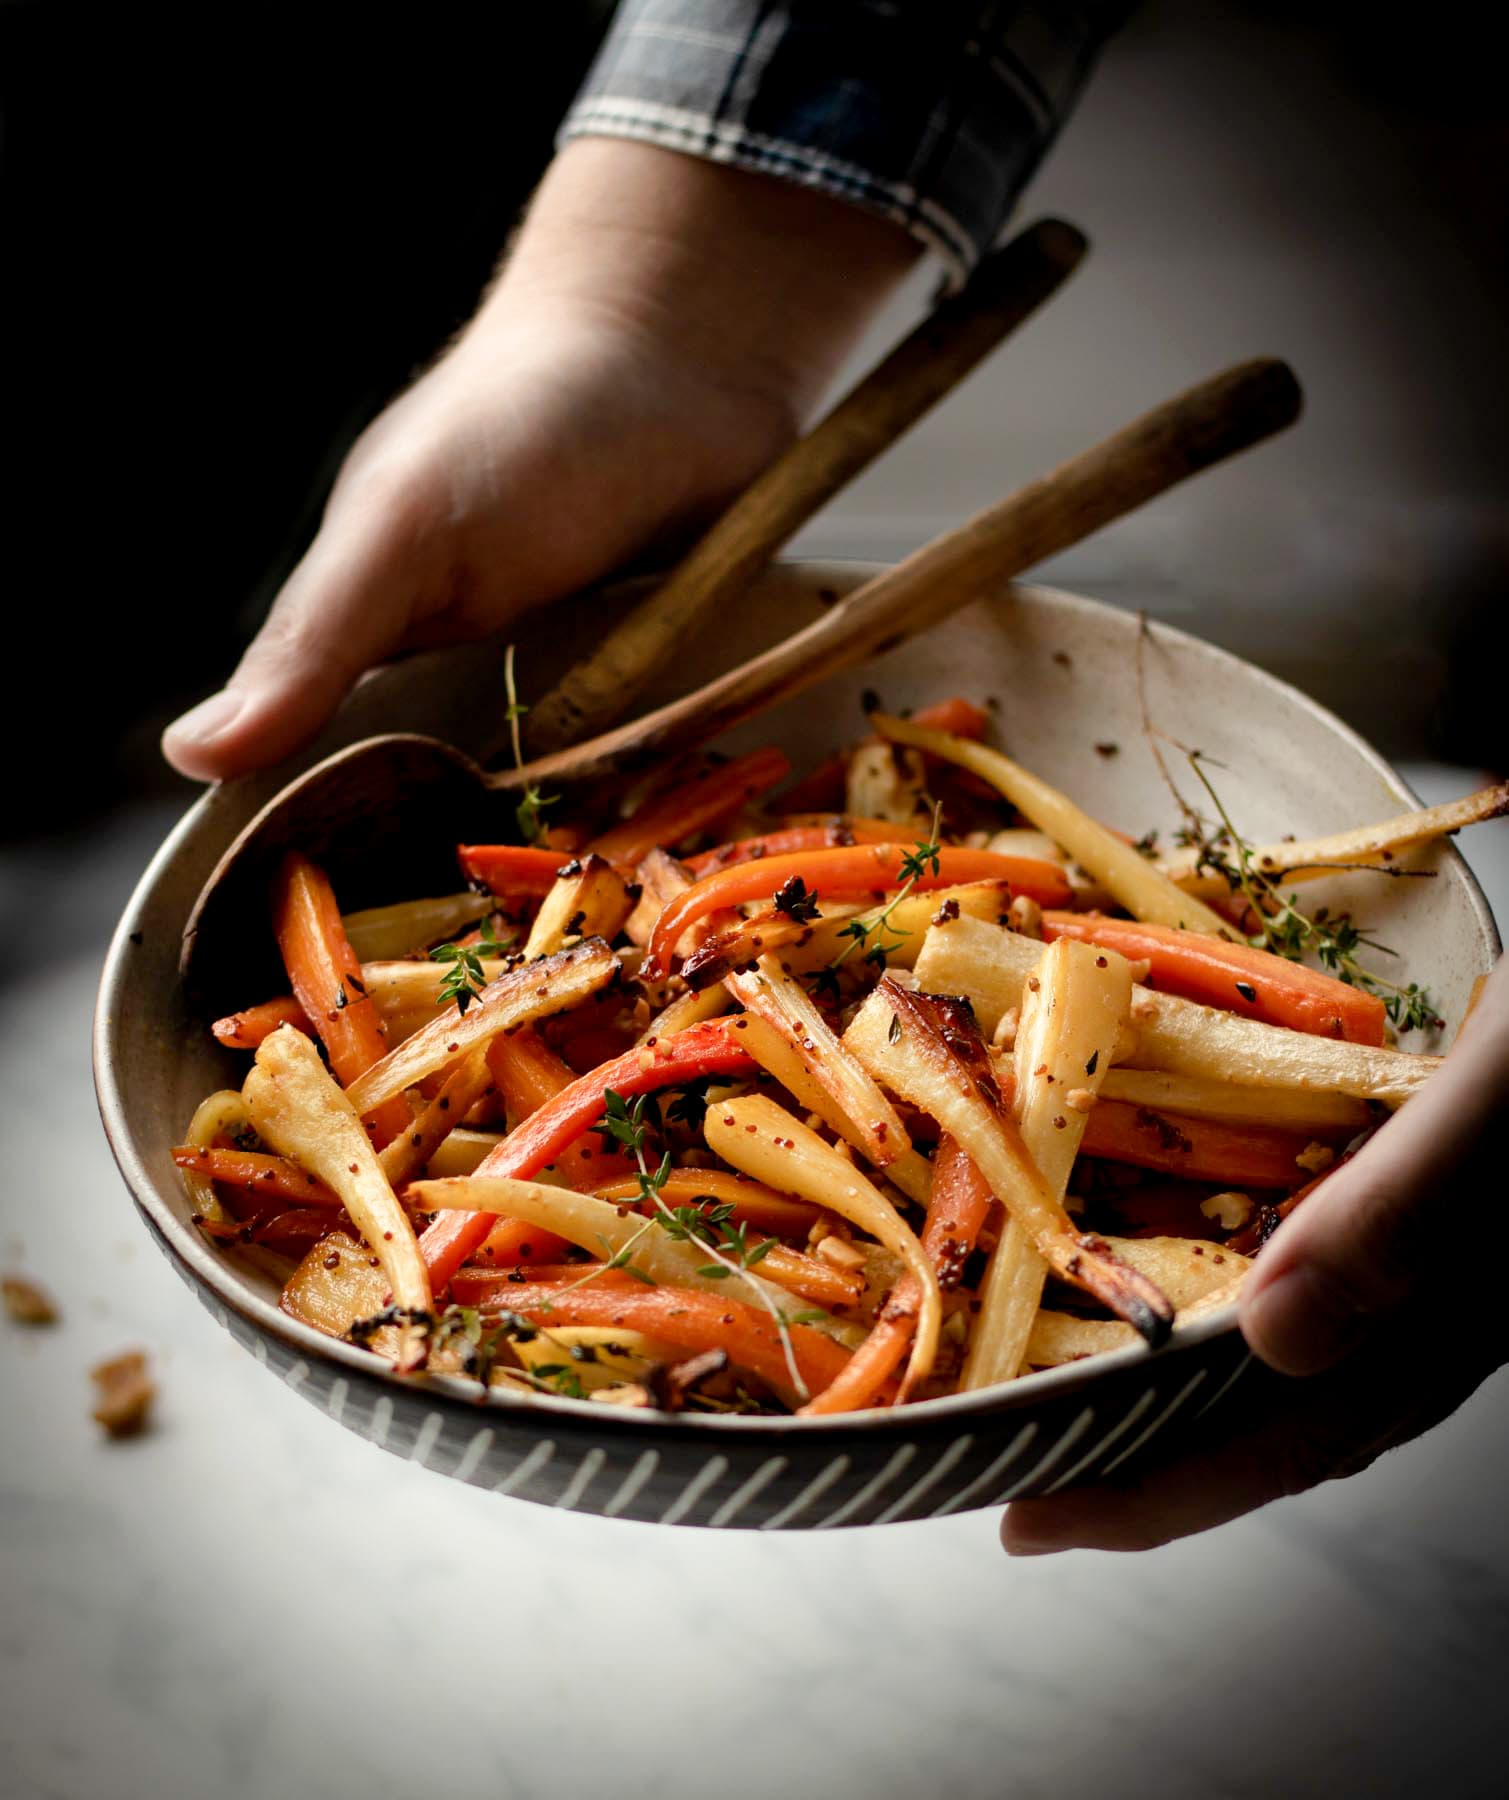 Hands holding serving bowl filled with roasted carrots and parsnips